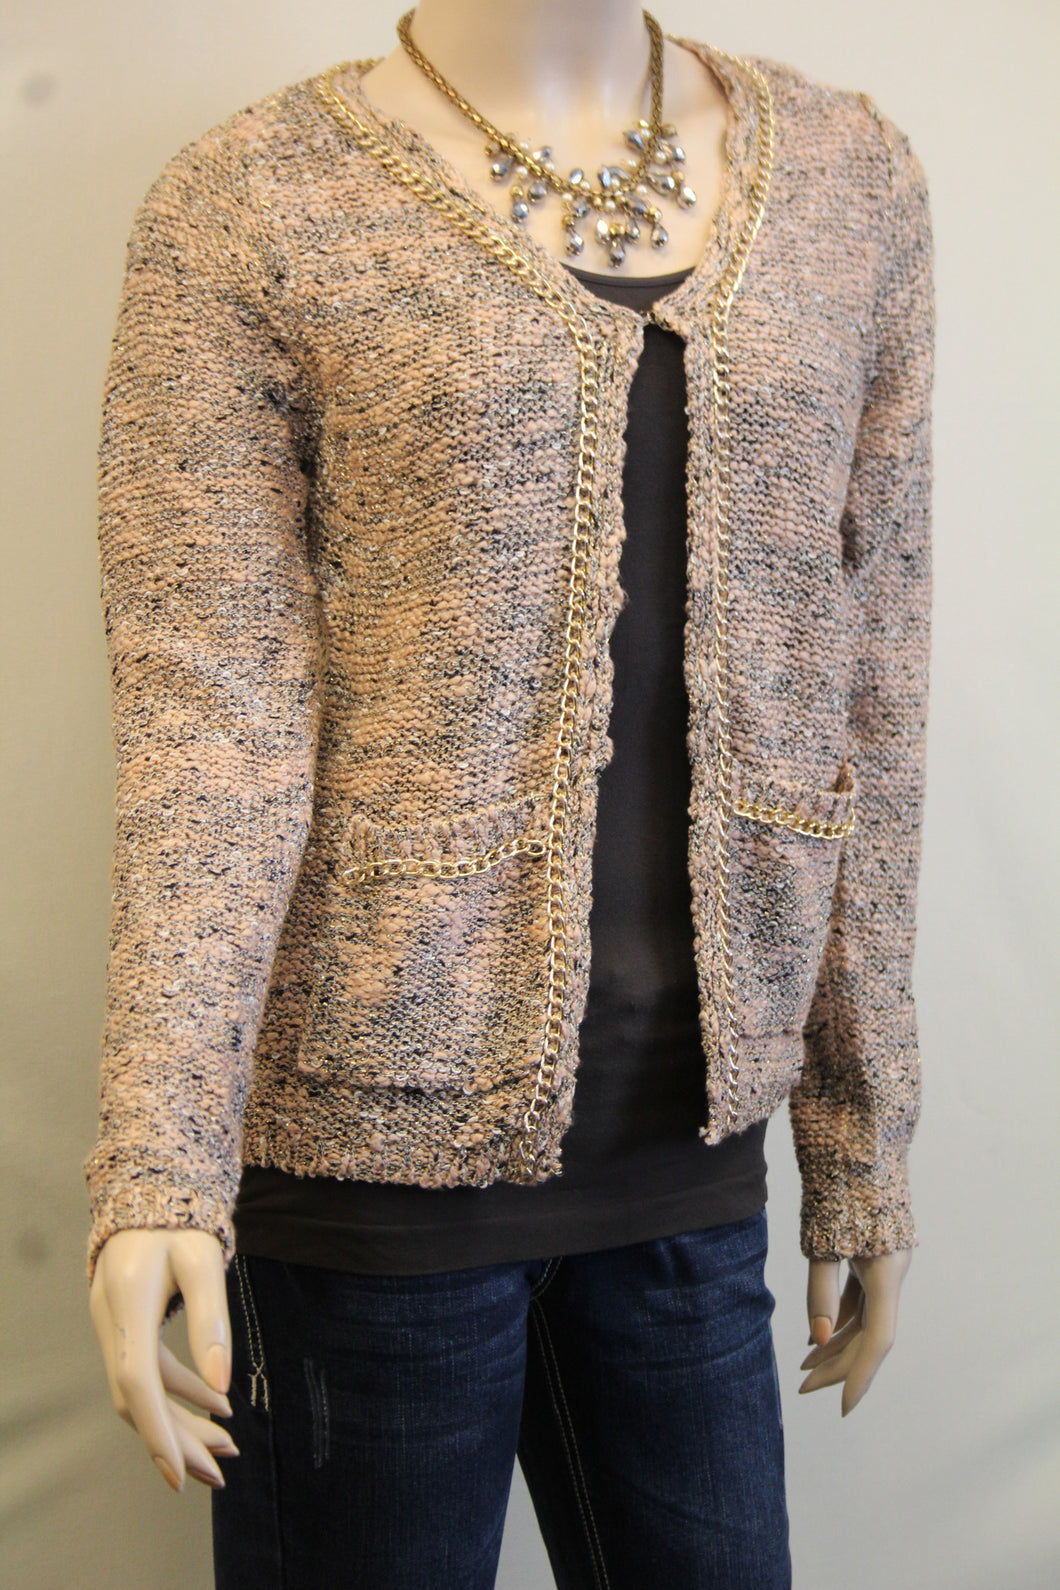 Lily | Two-Tone Sweater Cardigan with Gold Chain Trimming Pink